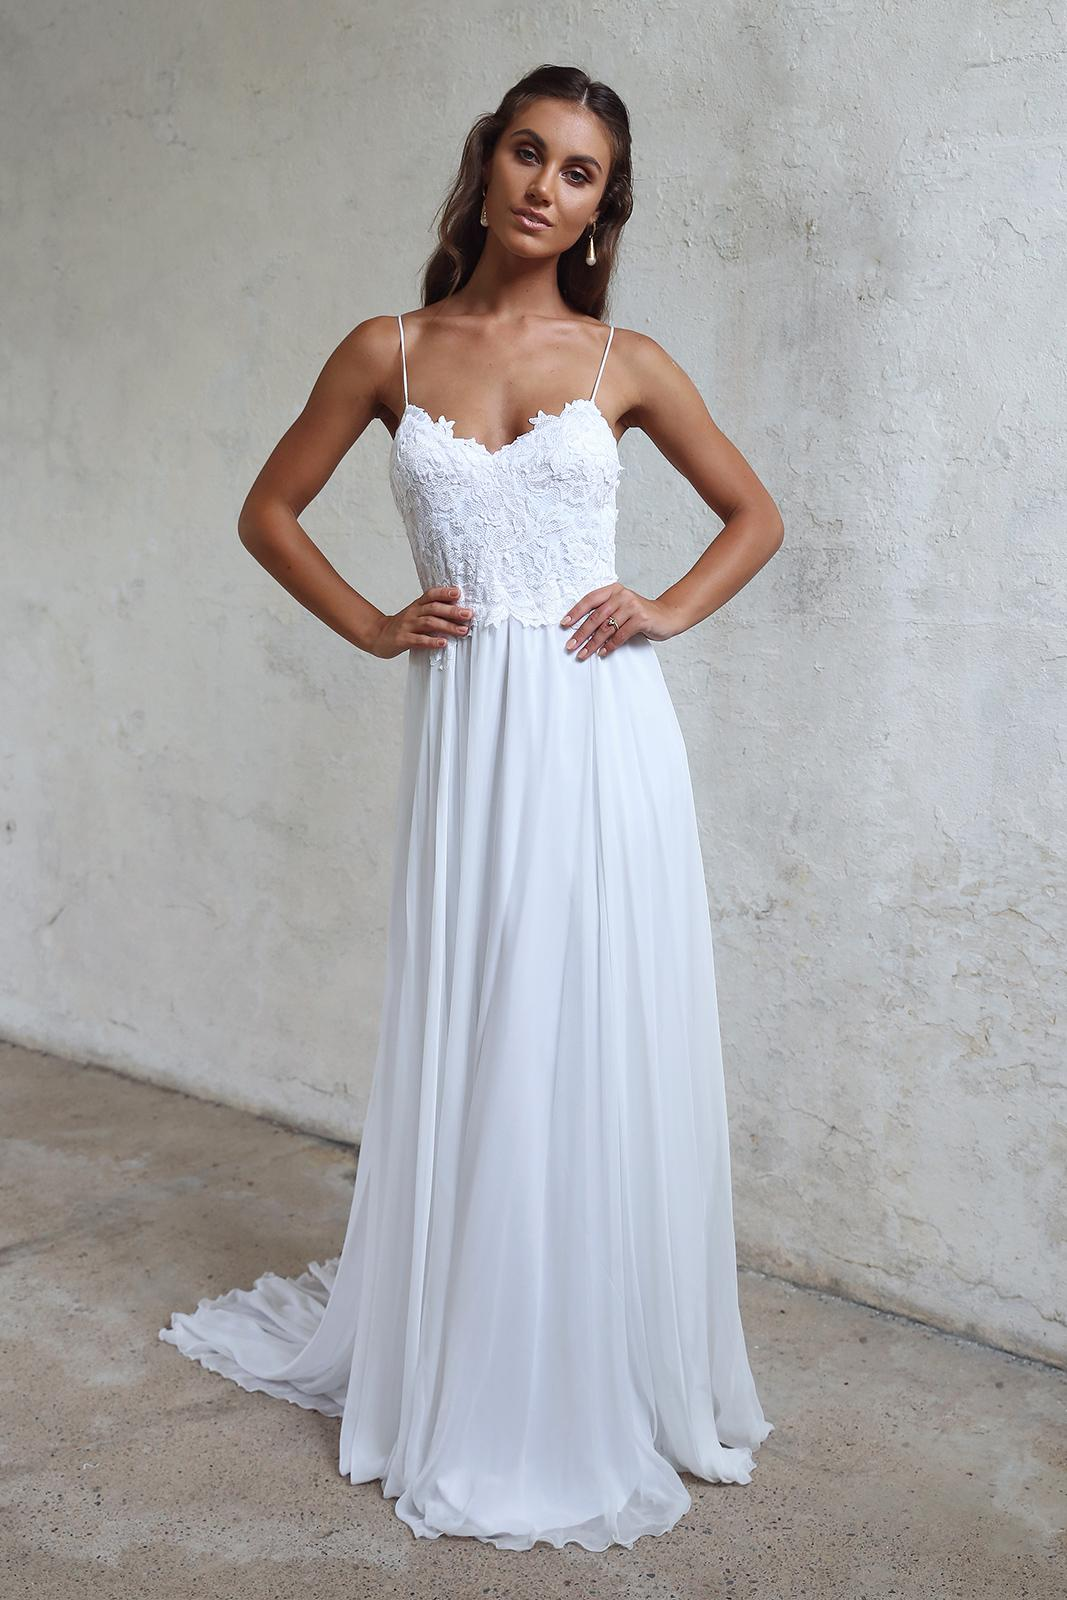 2018 Sexy Beach Wedding Dress Summer Beach Wedding Dresses